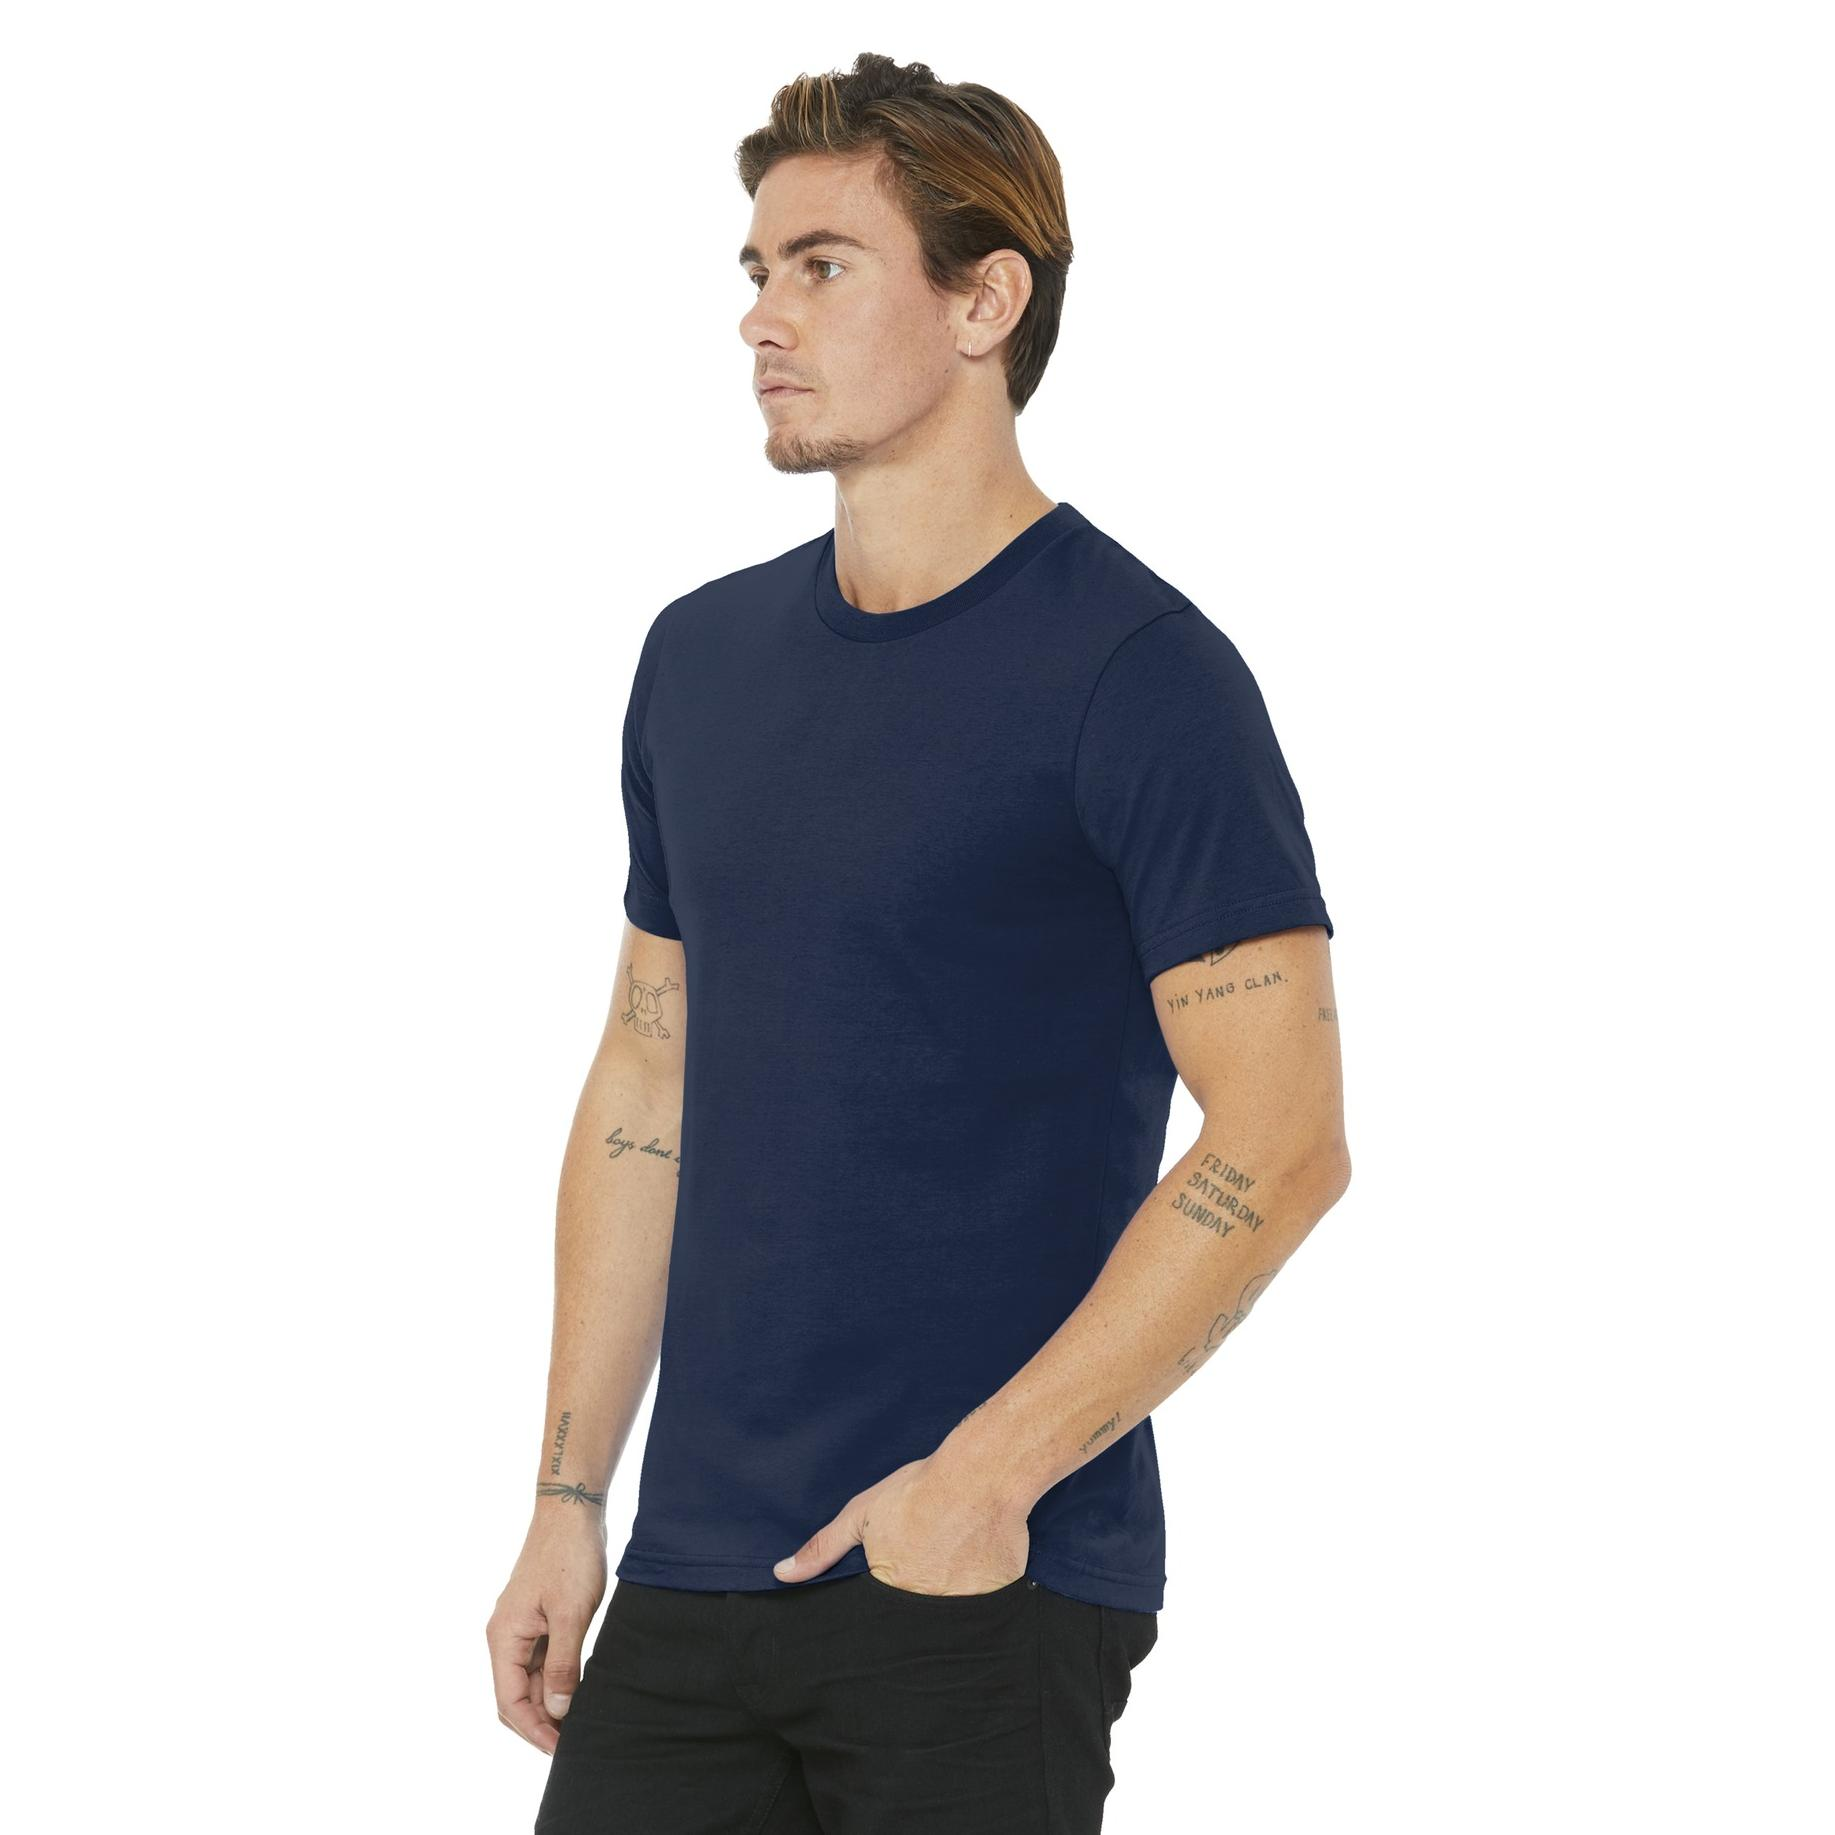 3b58dbc02 Bella + Canvas BC3001U Unisex Made In The USA Jersey Short Sleeve Tee -  Navy | FullSource.com